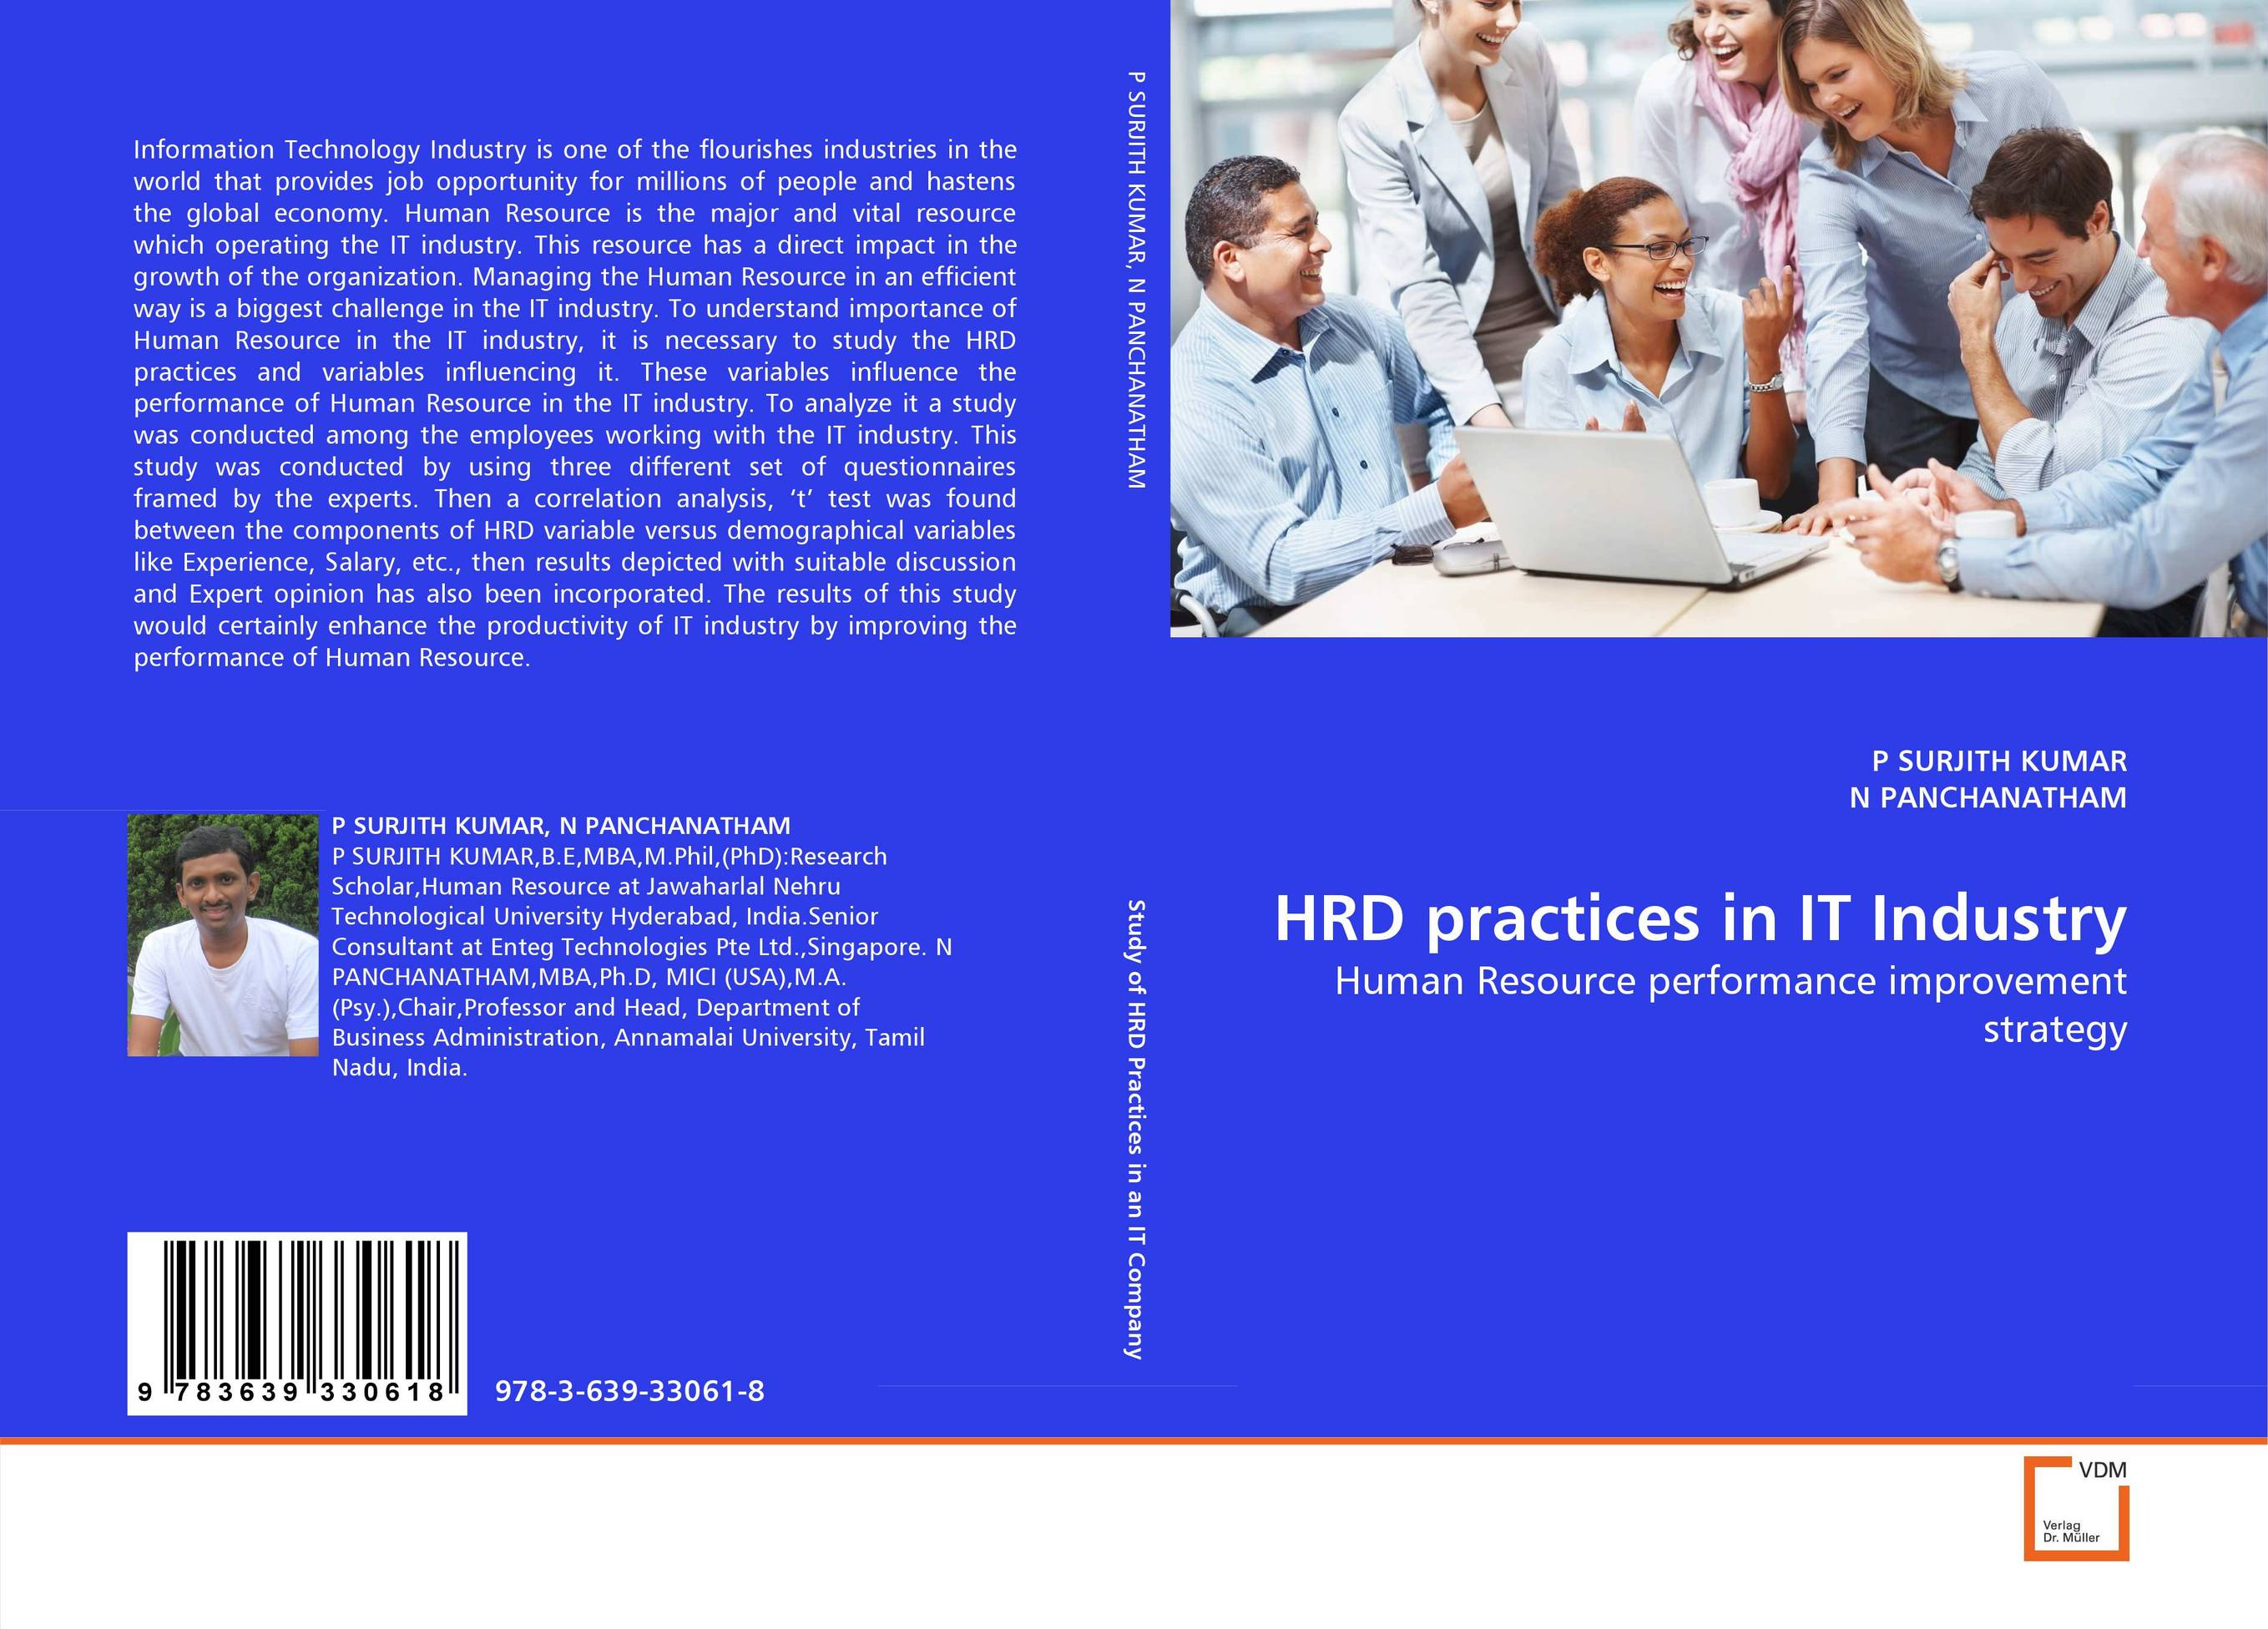 HRD practices in IT Industry managing the store